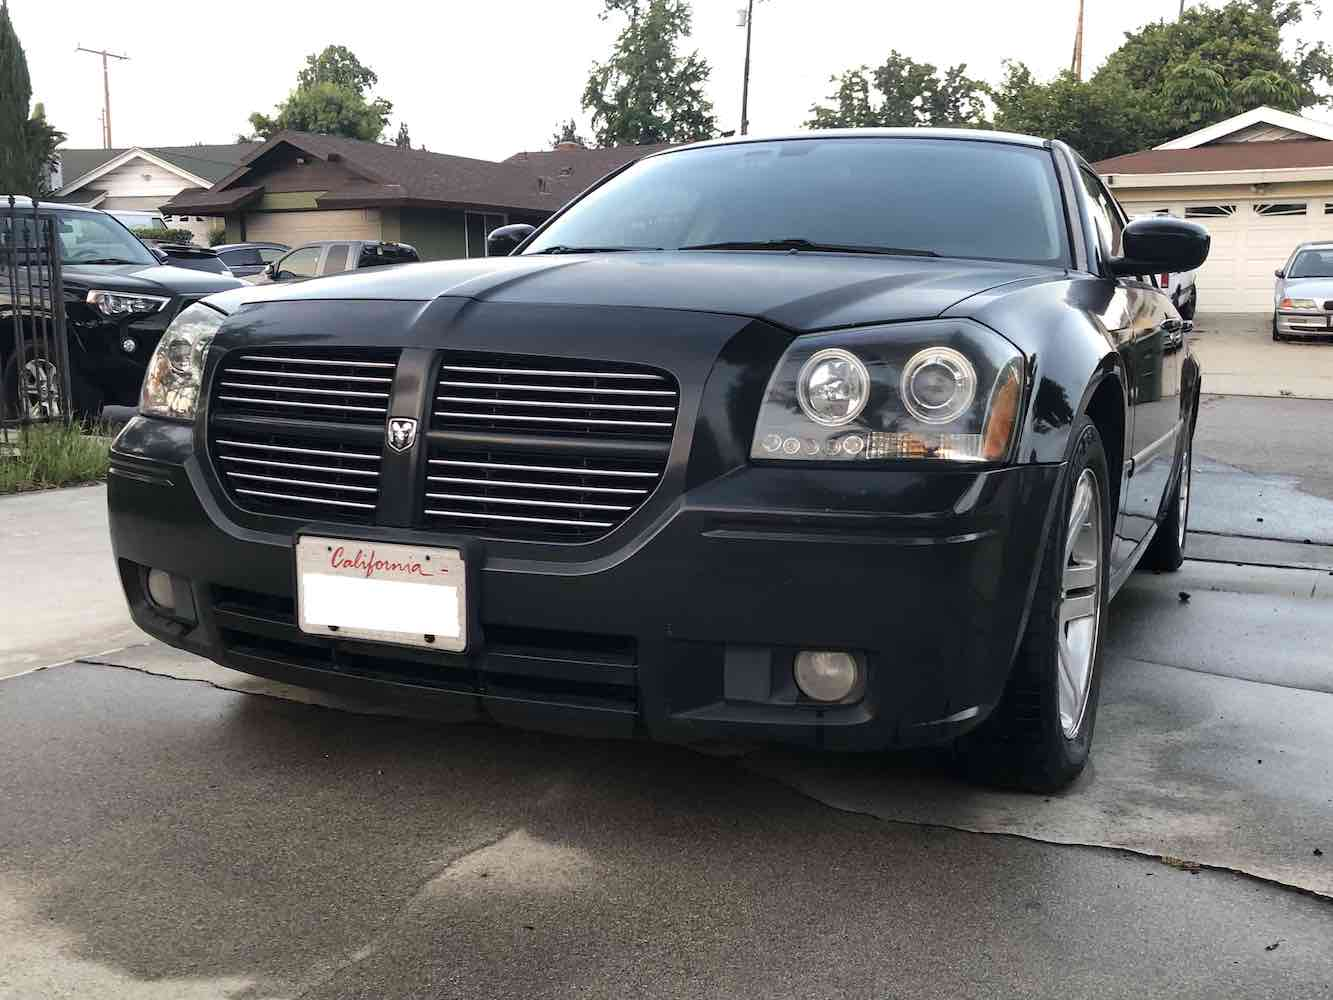 2007 Magnum R/T For Sale in SoCal-img_02_4442.jpeg